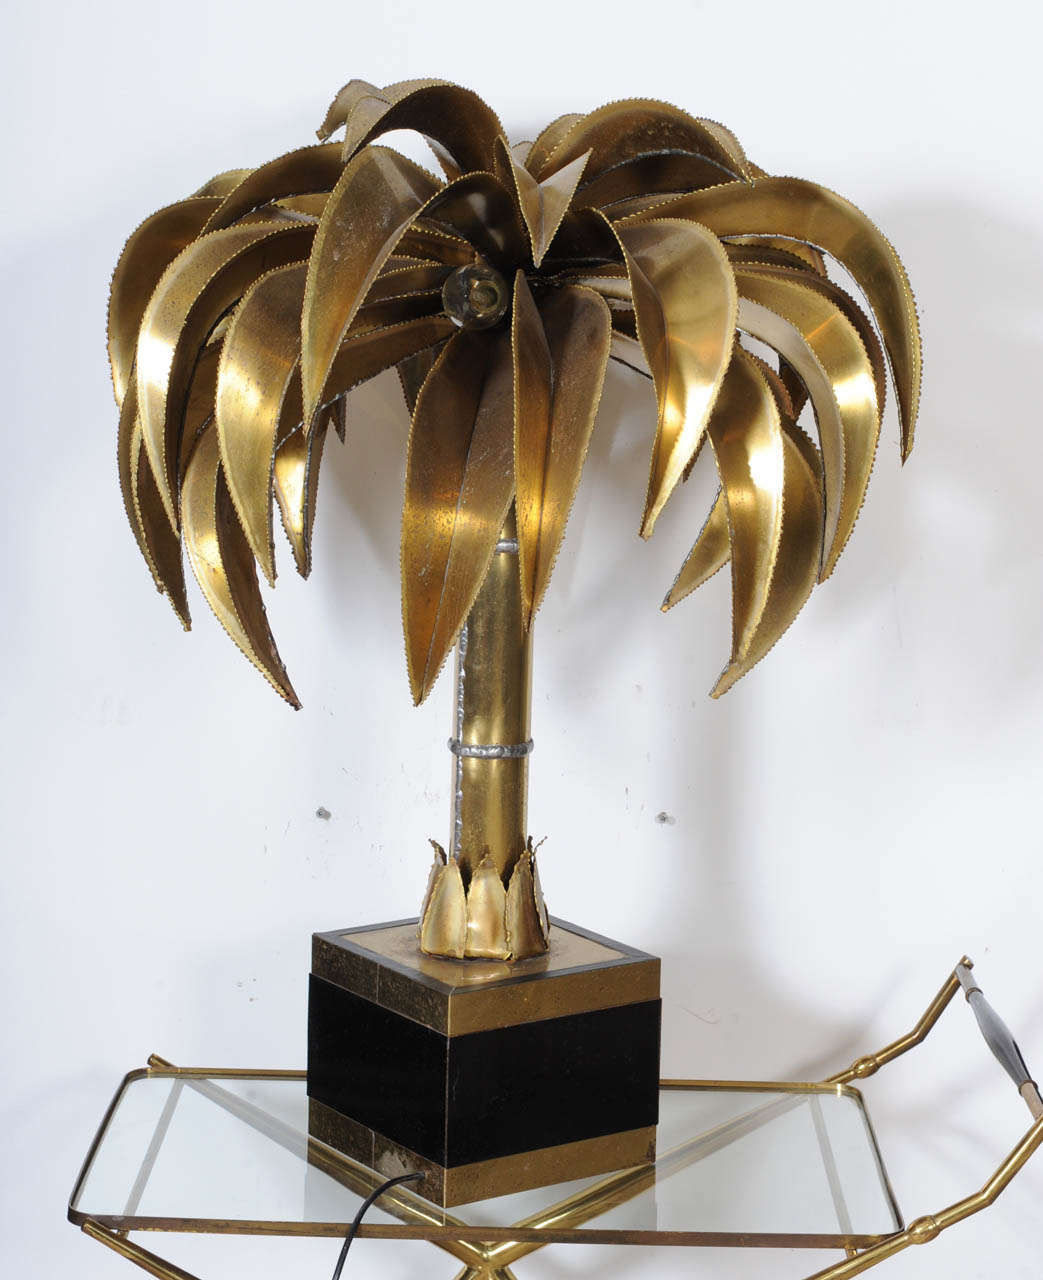 A Vintage 1950 S Palmtree Table Or Floor Lamp By Maison Jansen At 1stdibs